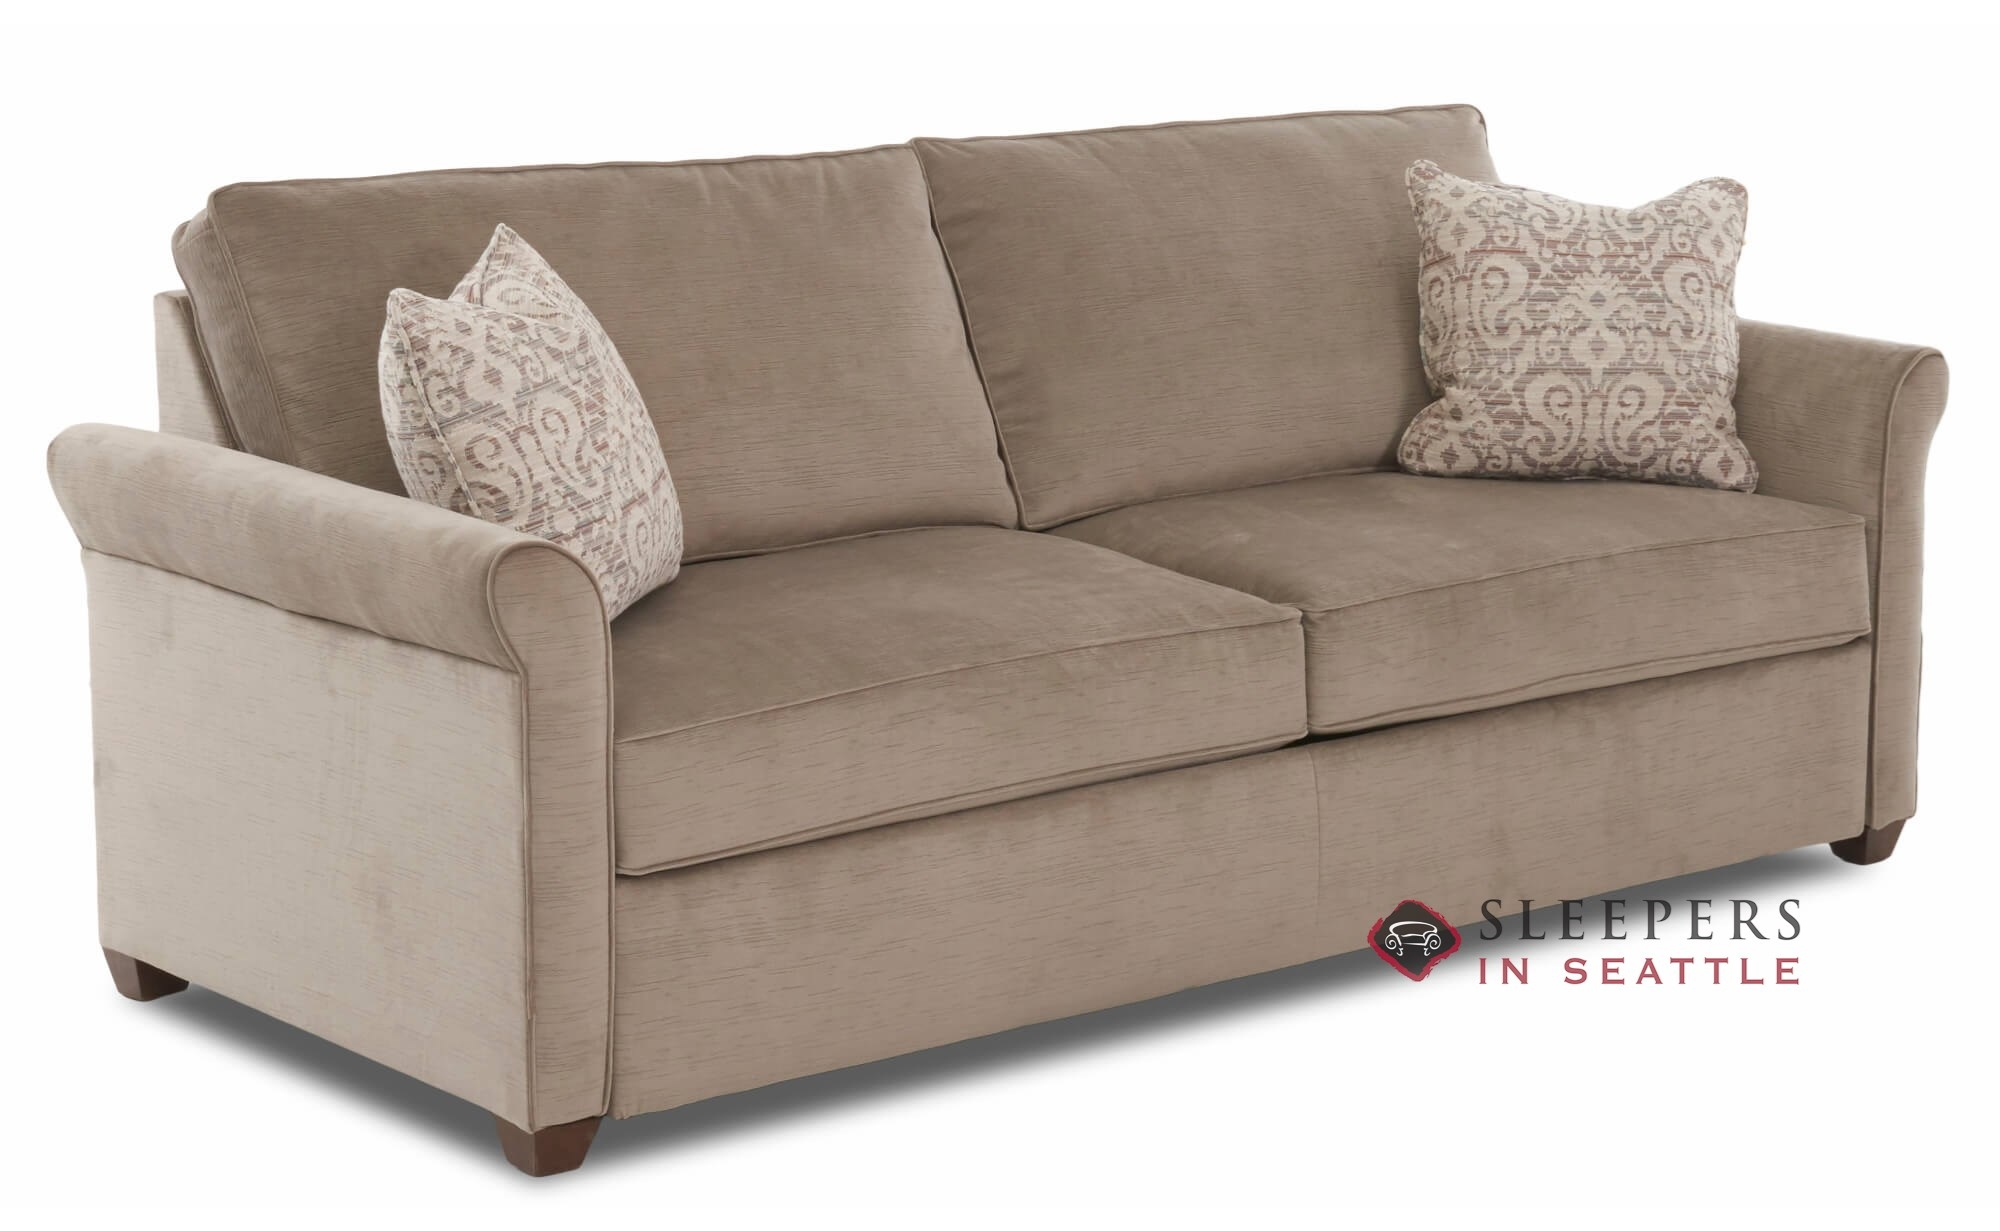 Magnificent Savvy Fort Worth Queen Sleeper Sofa Caraccident5 Cool Chair Designs And Ideas Caraccident5Info